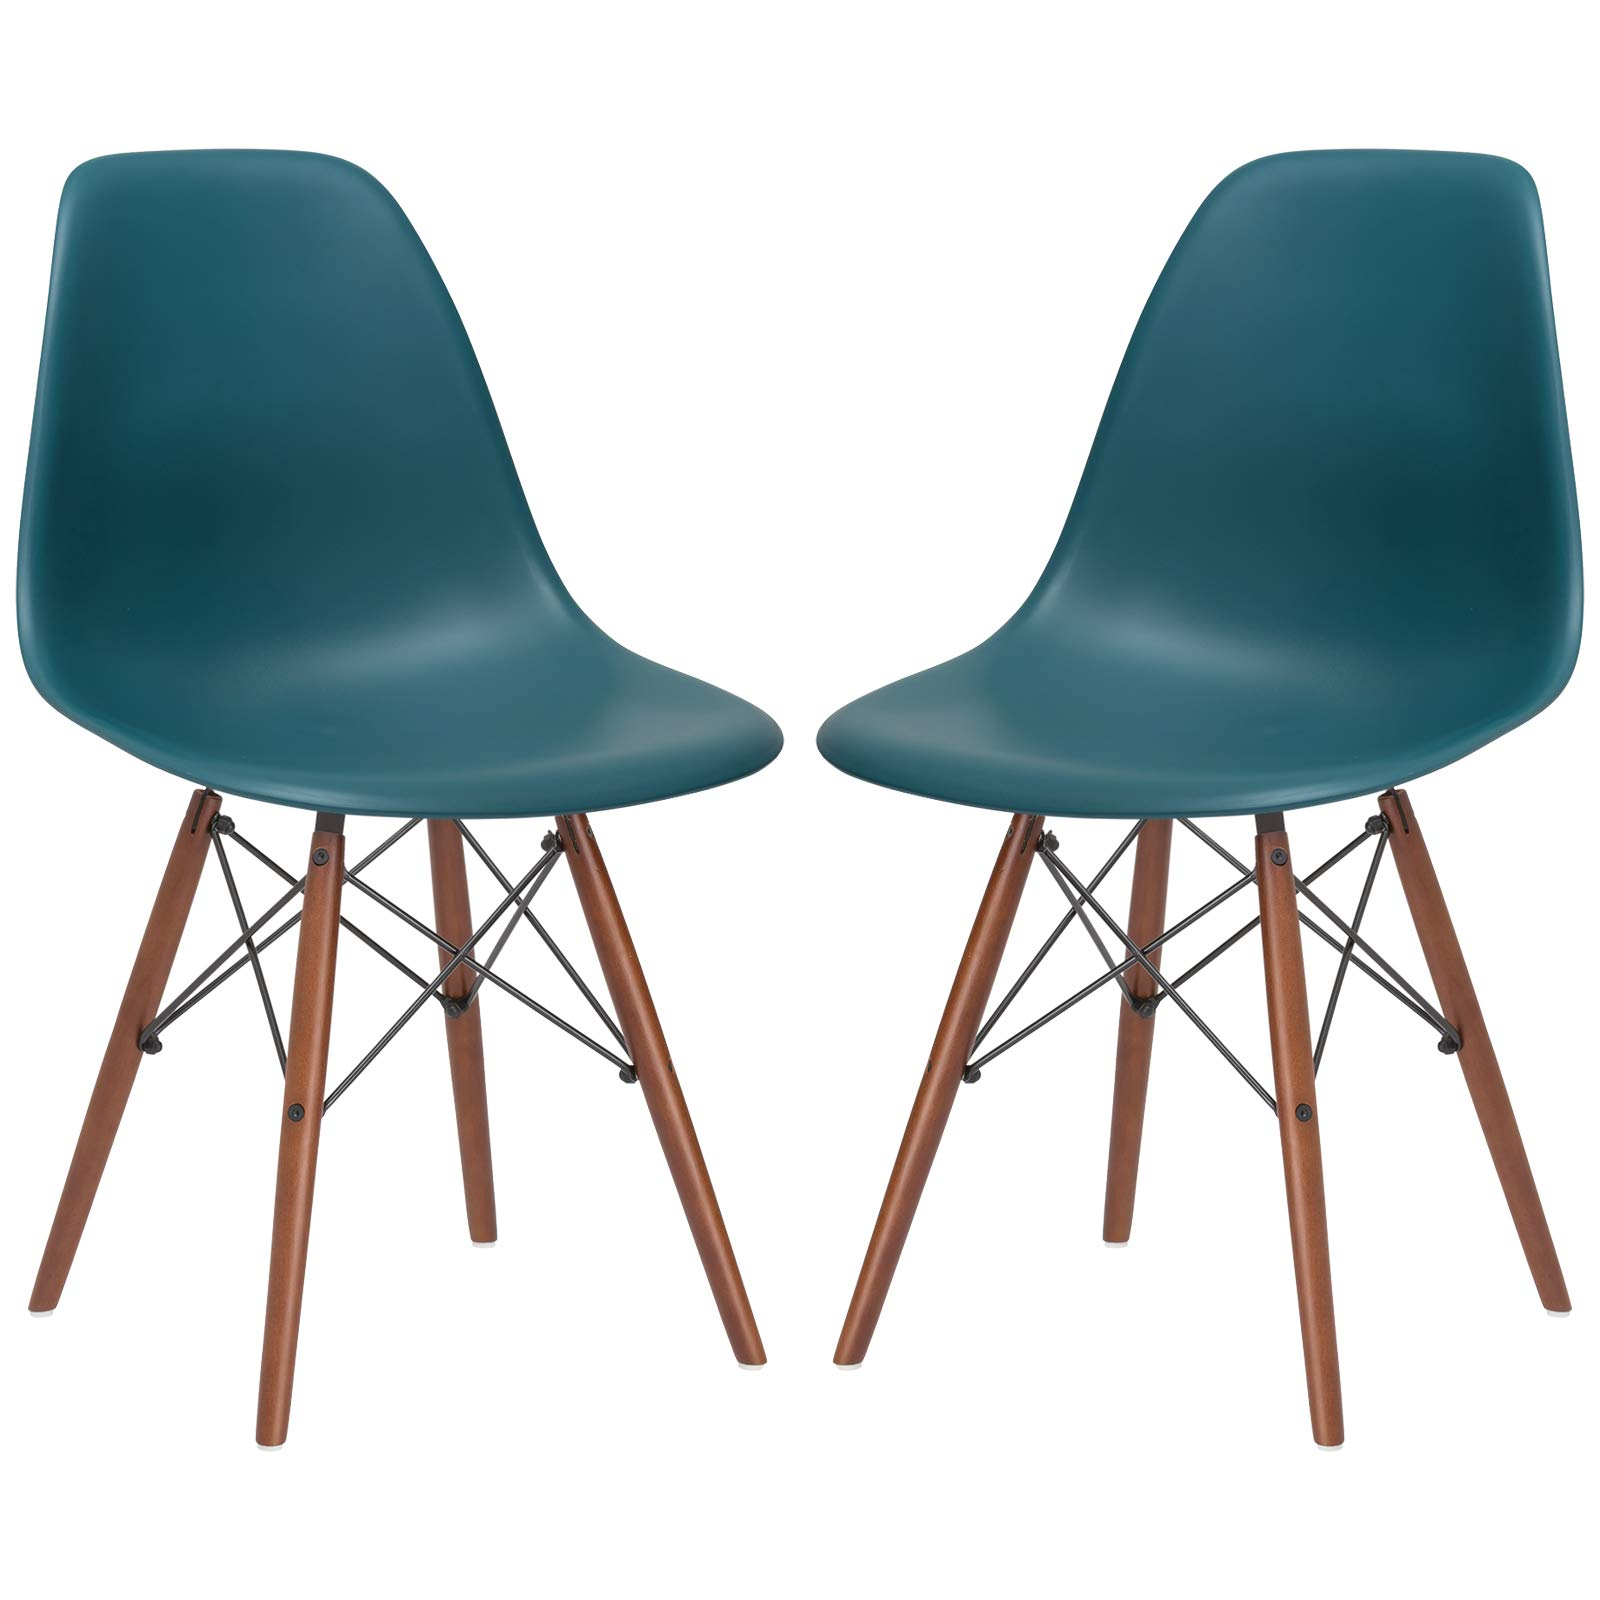 Poly and Bark Vortex Modern Mid-Century Side Chair with Wooden Walnut Legs for Kitchen, Living Room and Dining Room, Teal (Set of 2) by POLY & BARK